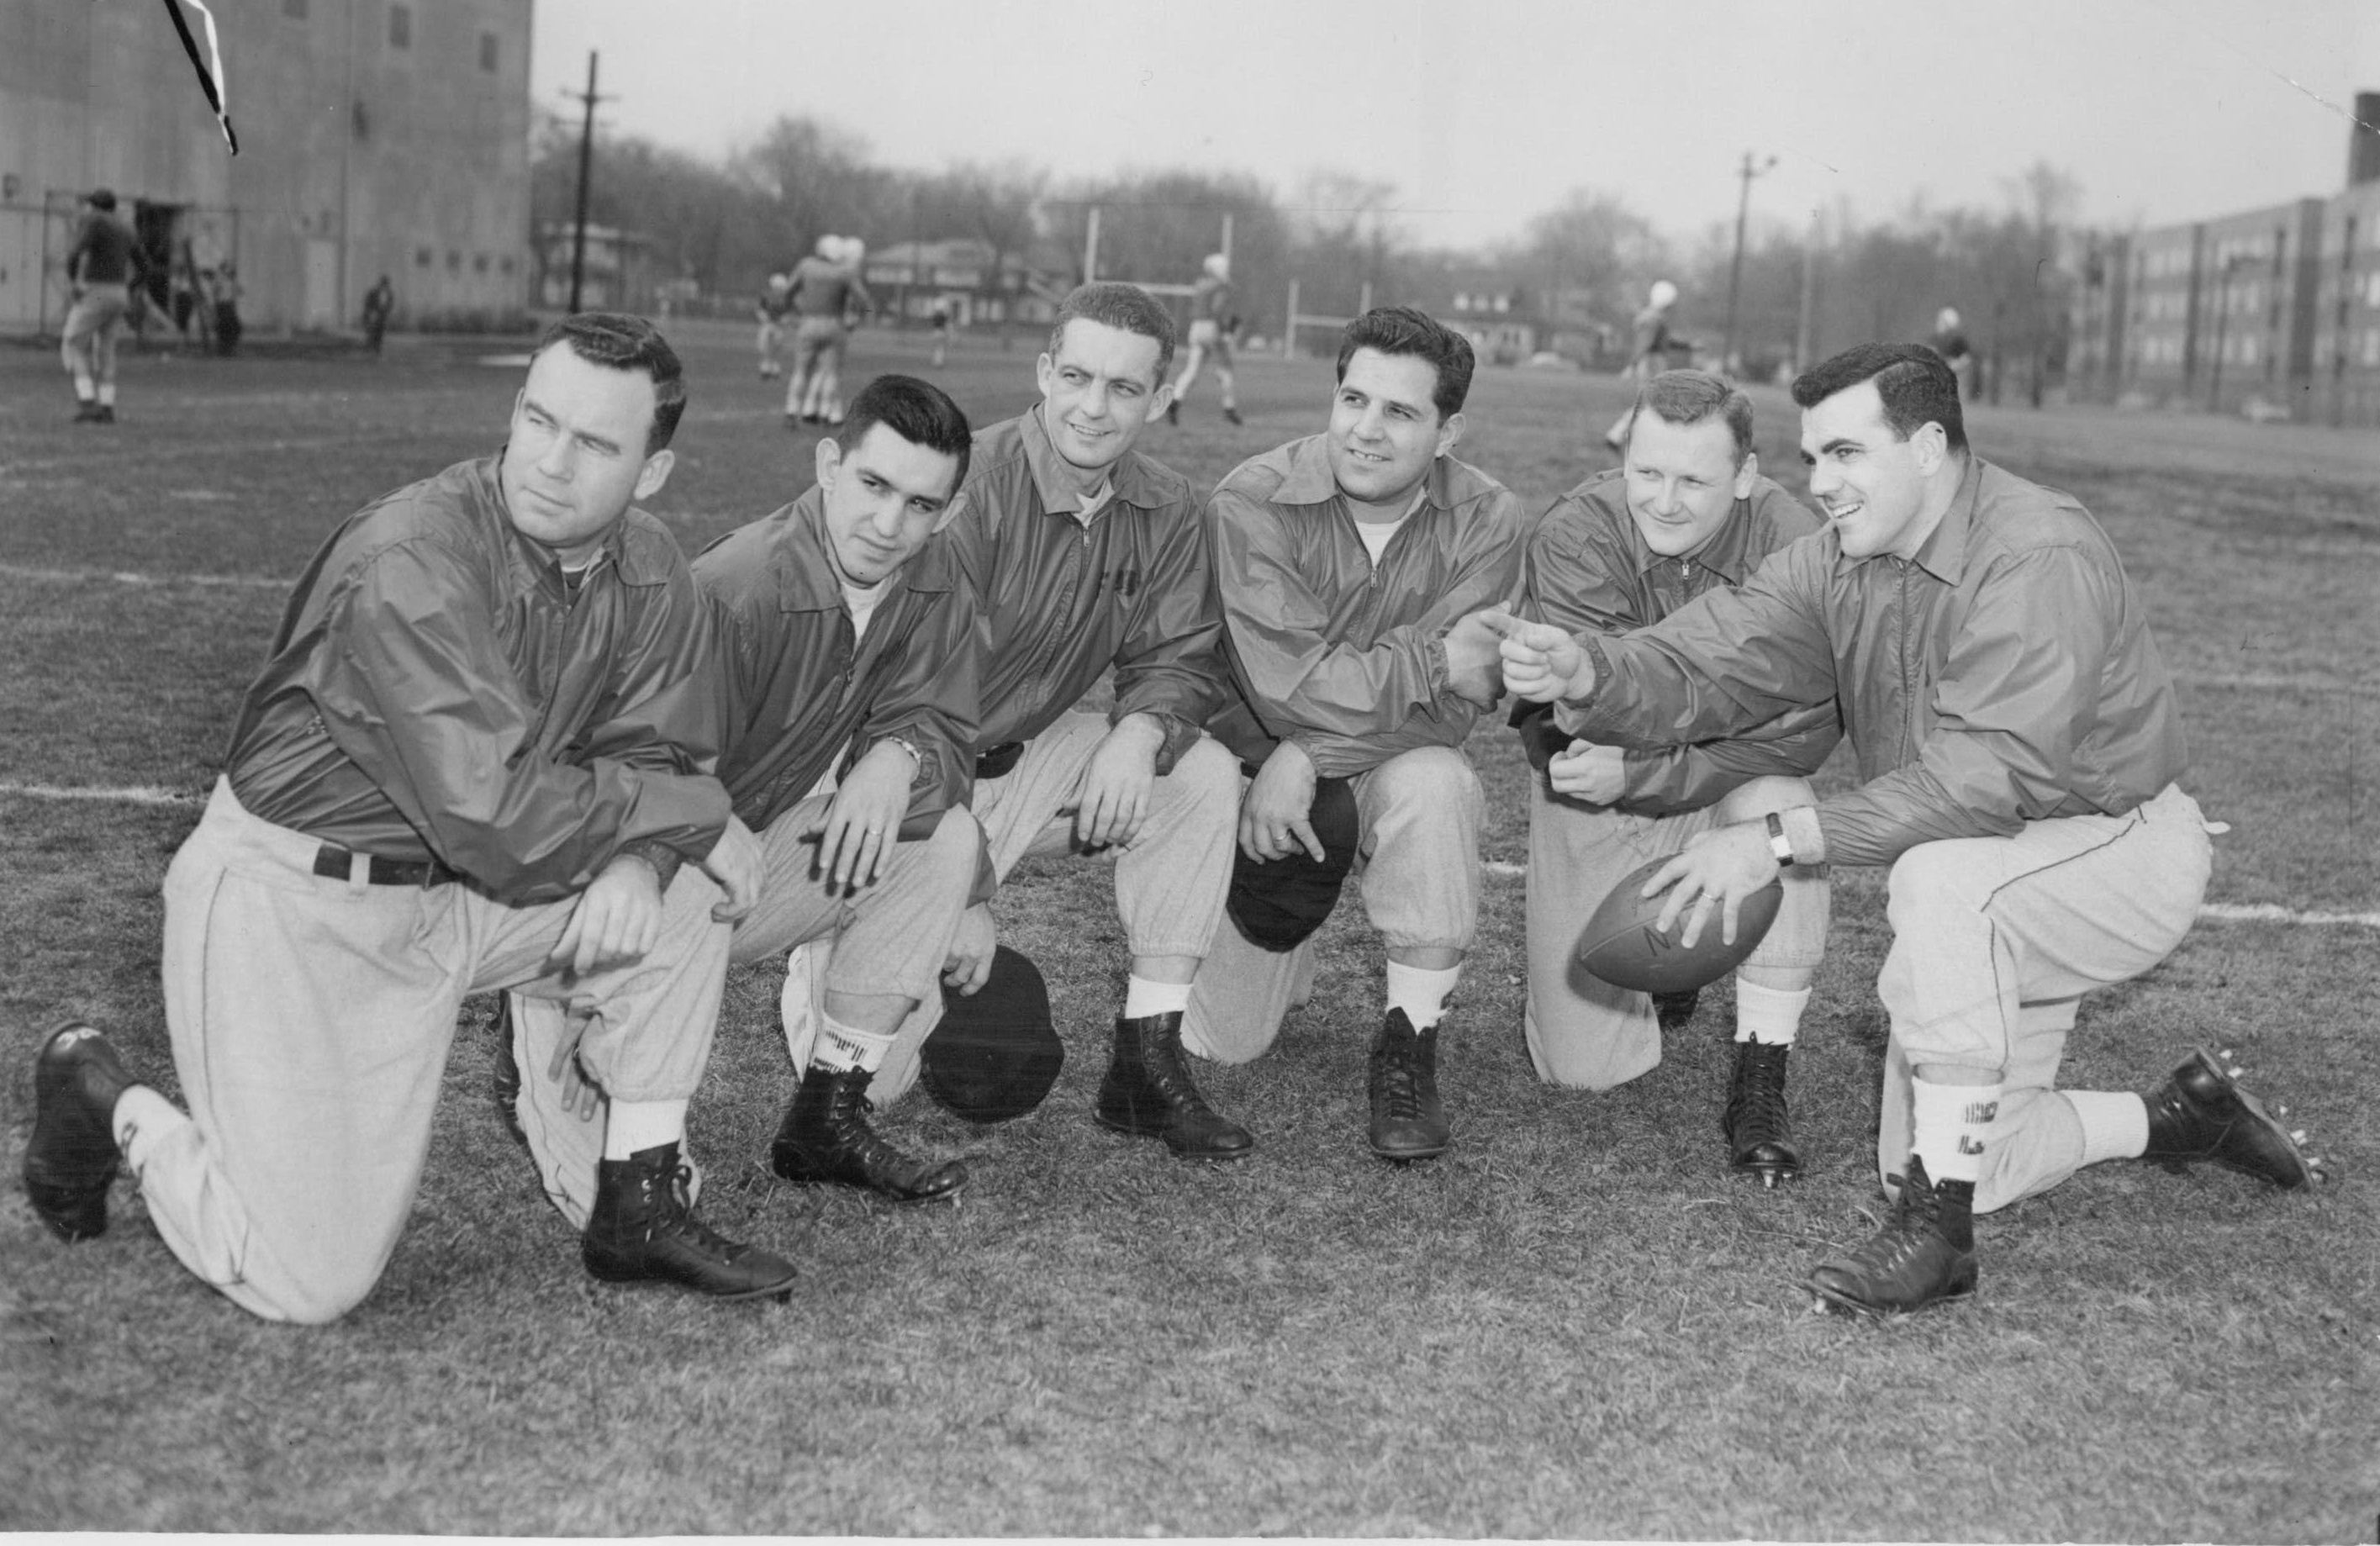 6292d741c06 In 1956, coach Ara Parseghian came to Northwestern. Here he poses with his  assistant coaches. (From left) Paul Shoults, Dick Urich, Bruce Beatty, ...